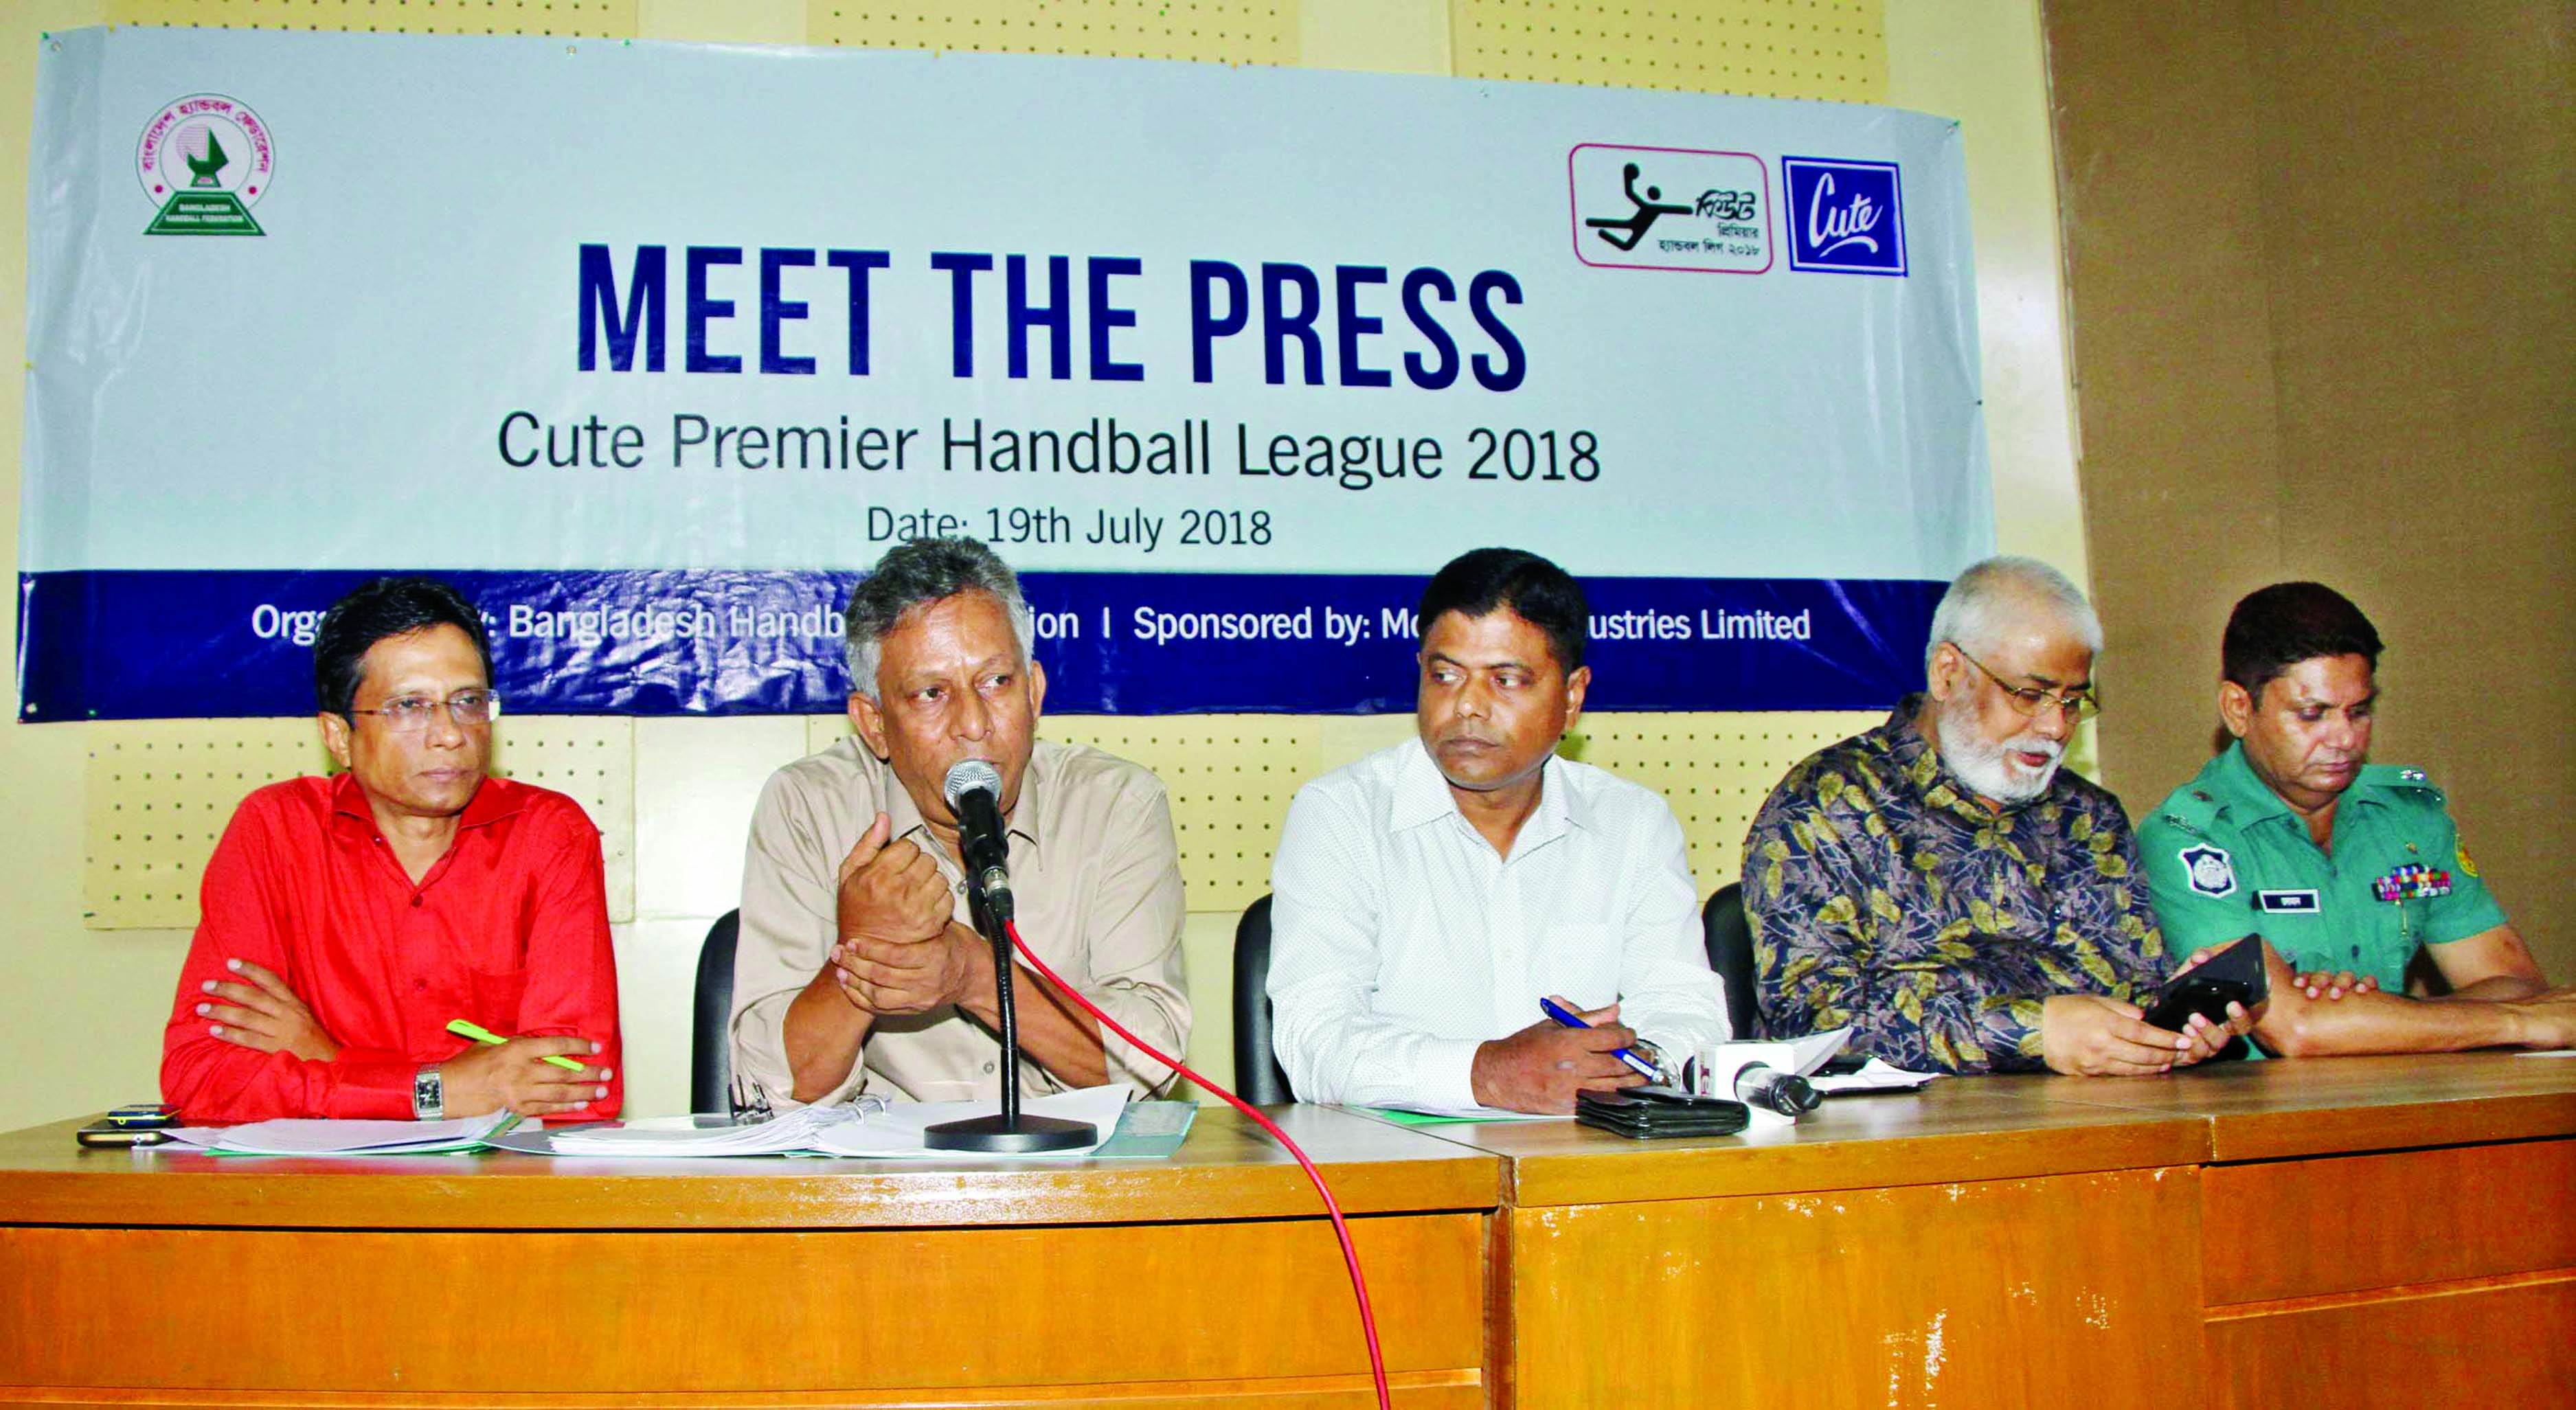 Cute Premier Handball League begins tomorrow